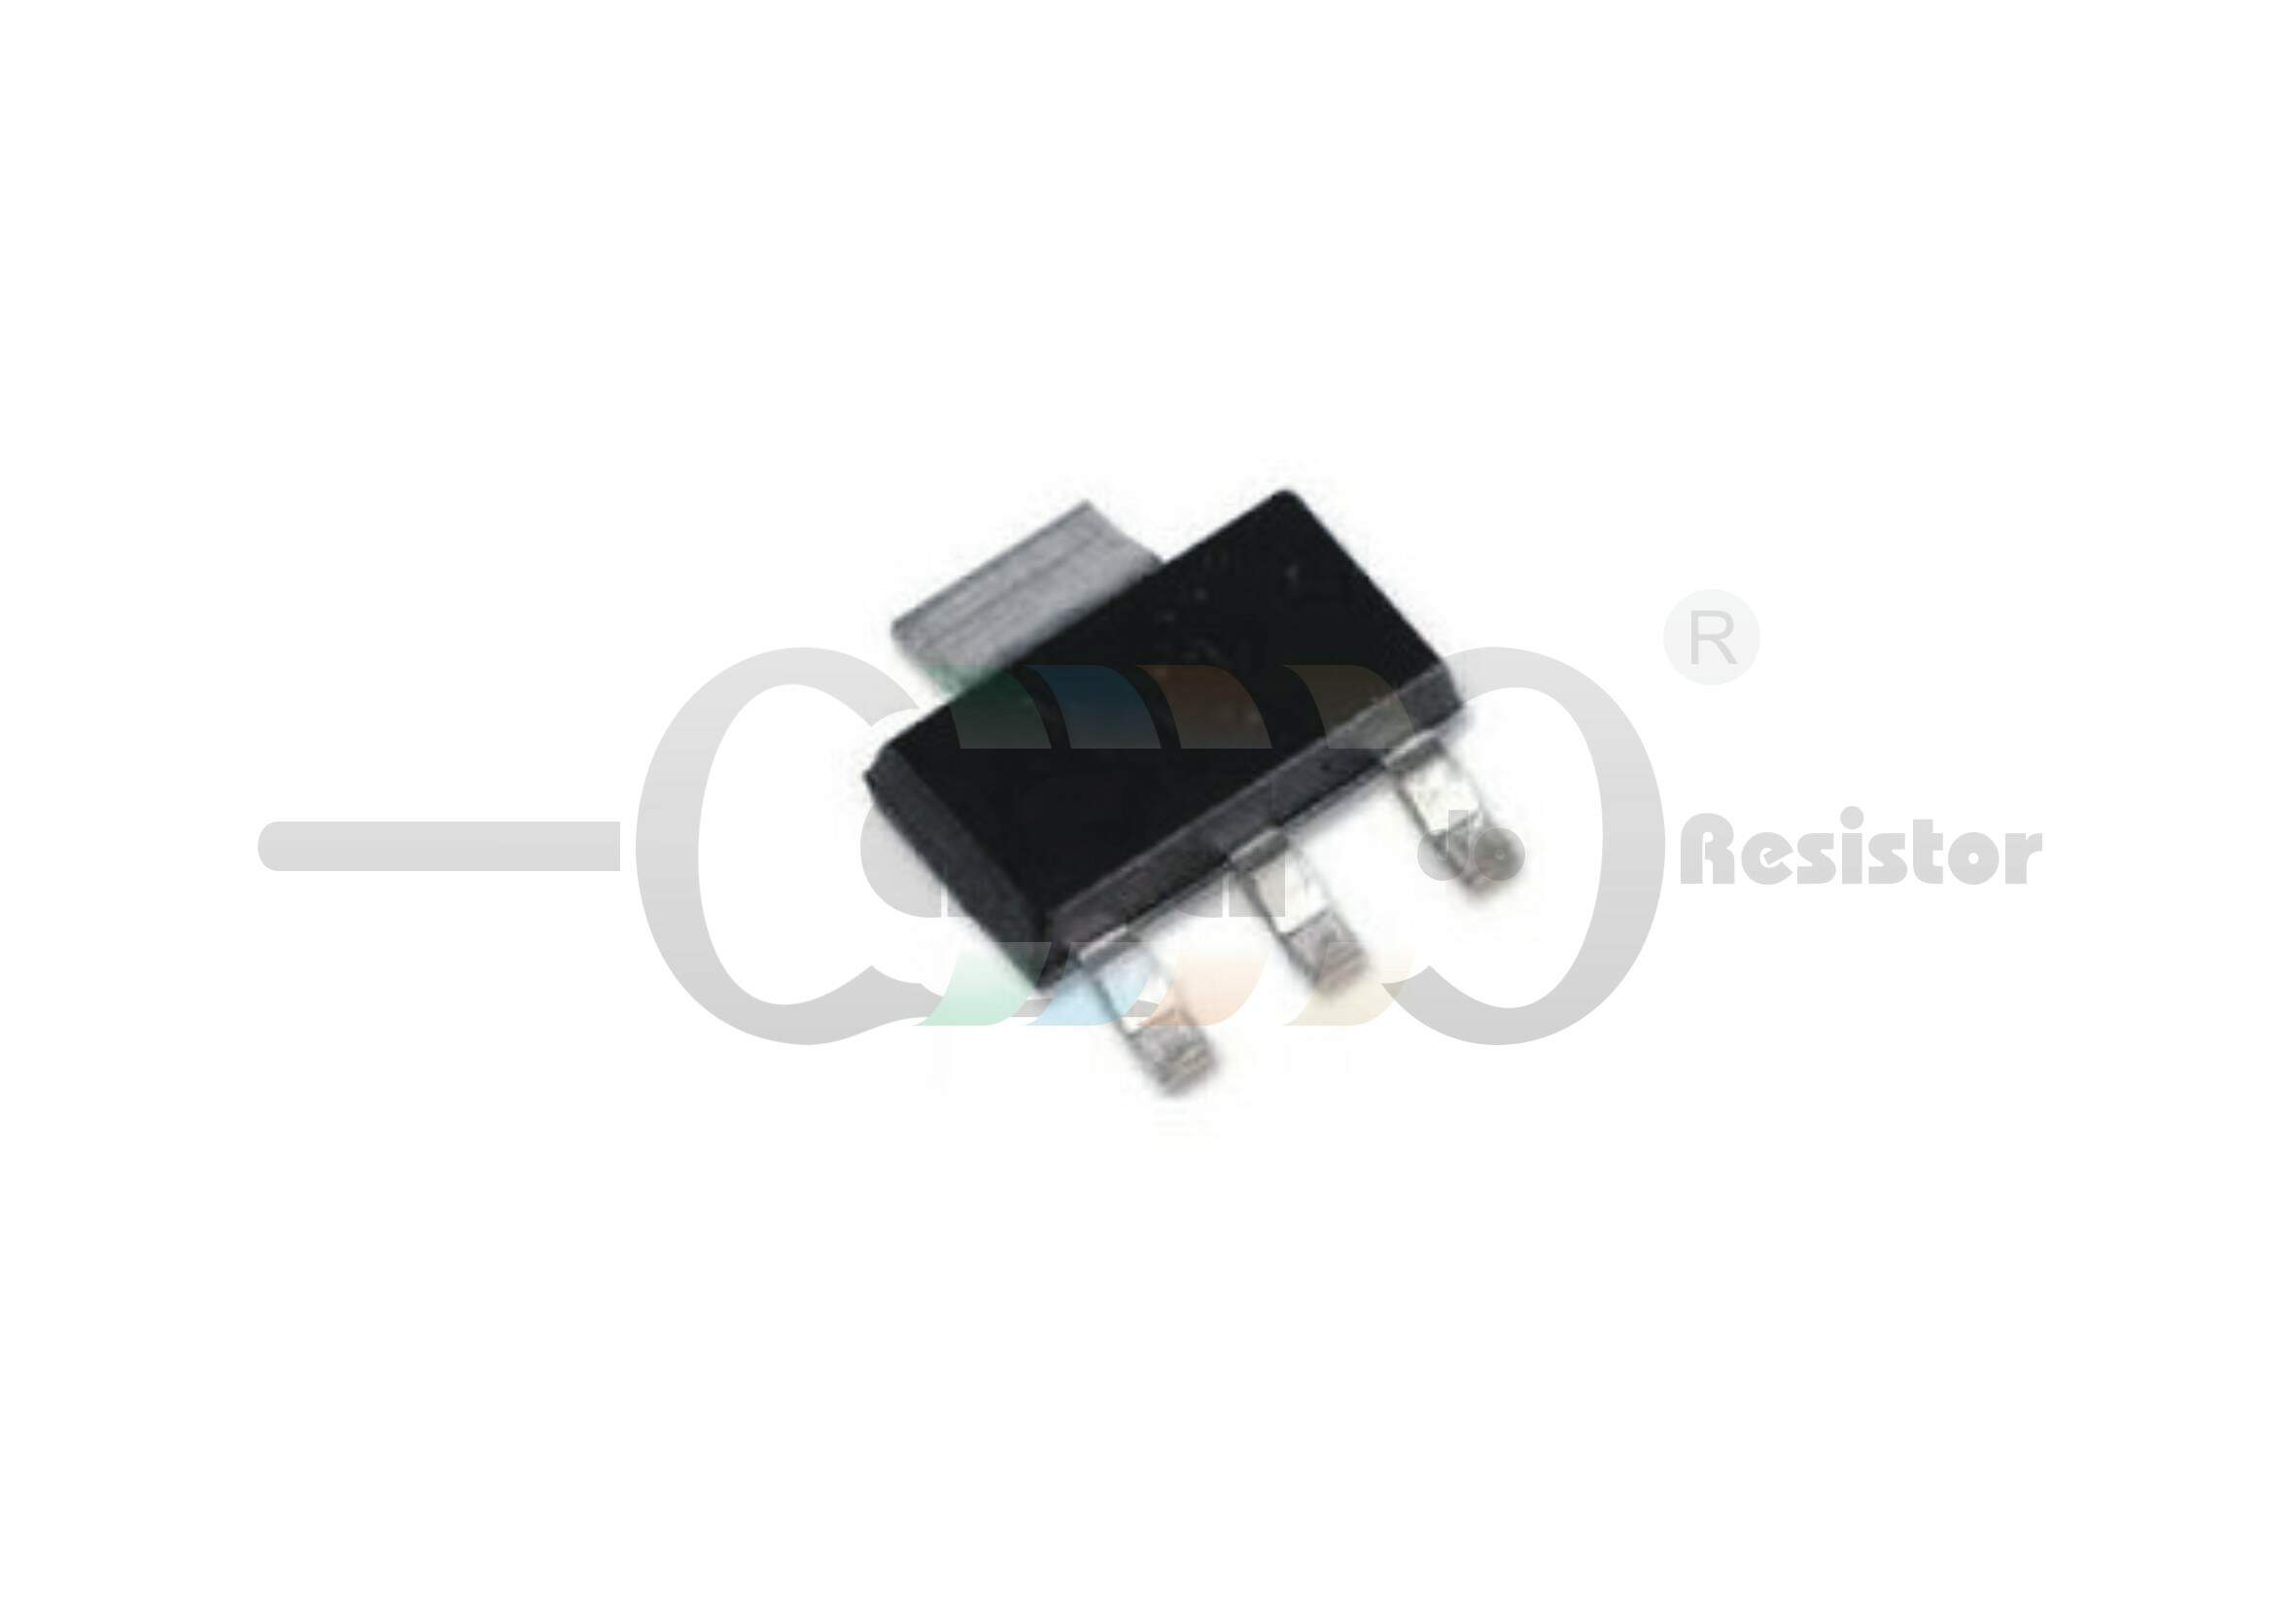 CI SMD AMS117 - 1.8 (ZCUS0024)